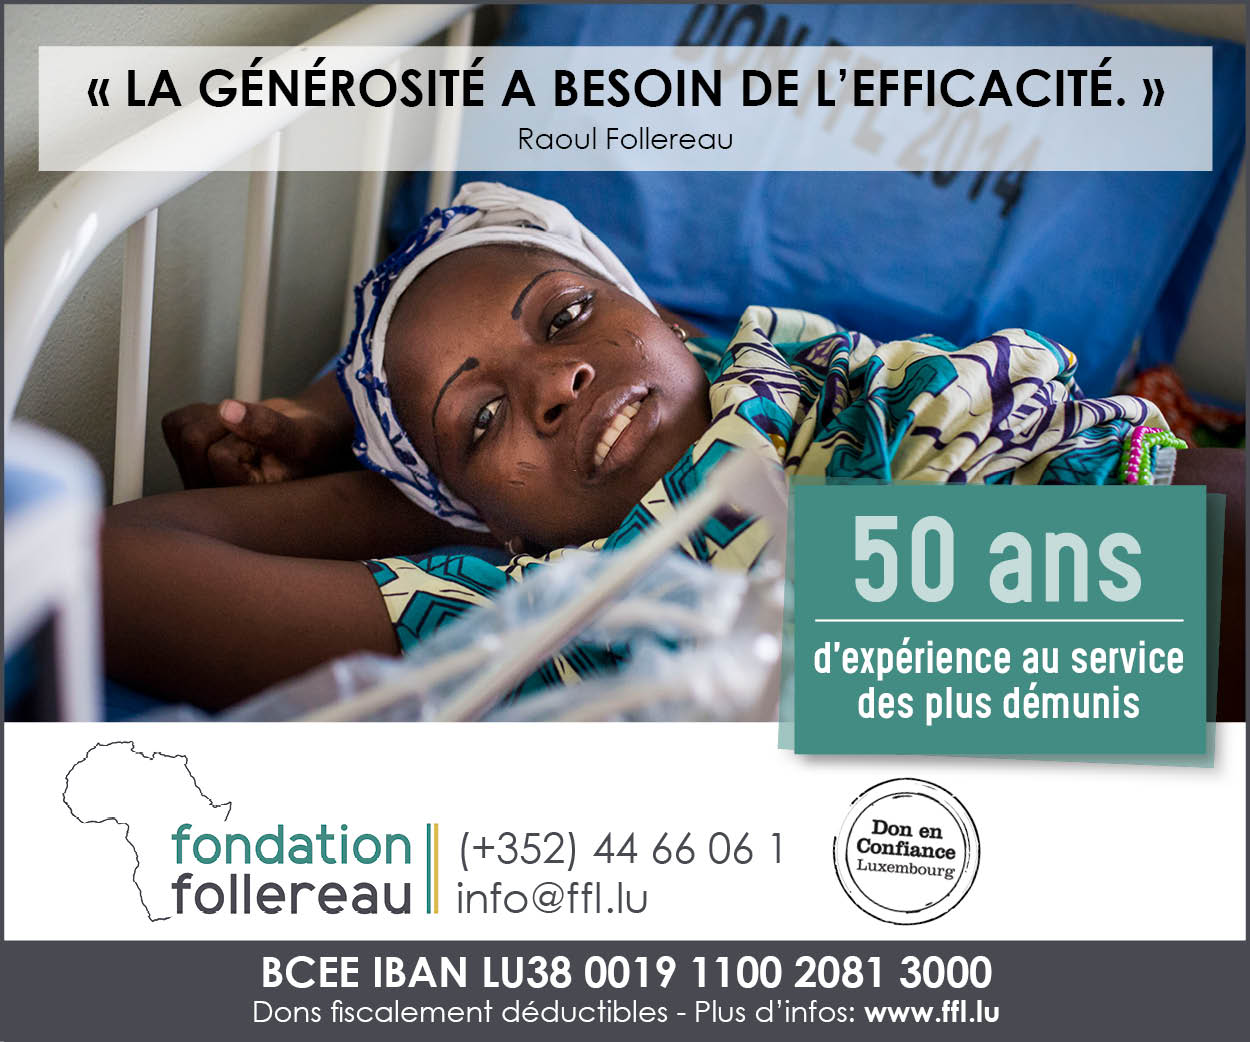 Fondation Raoul Follereau